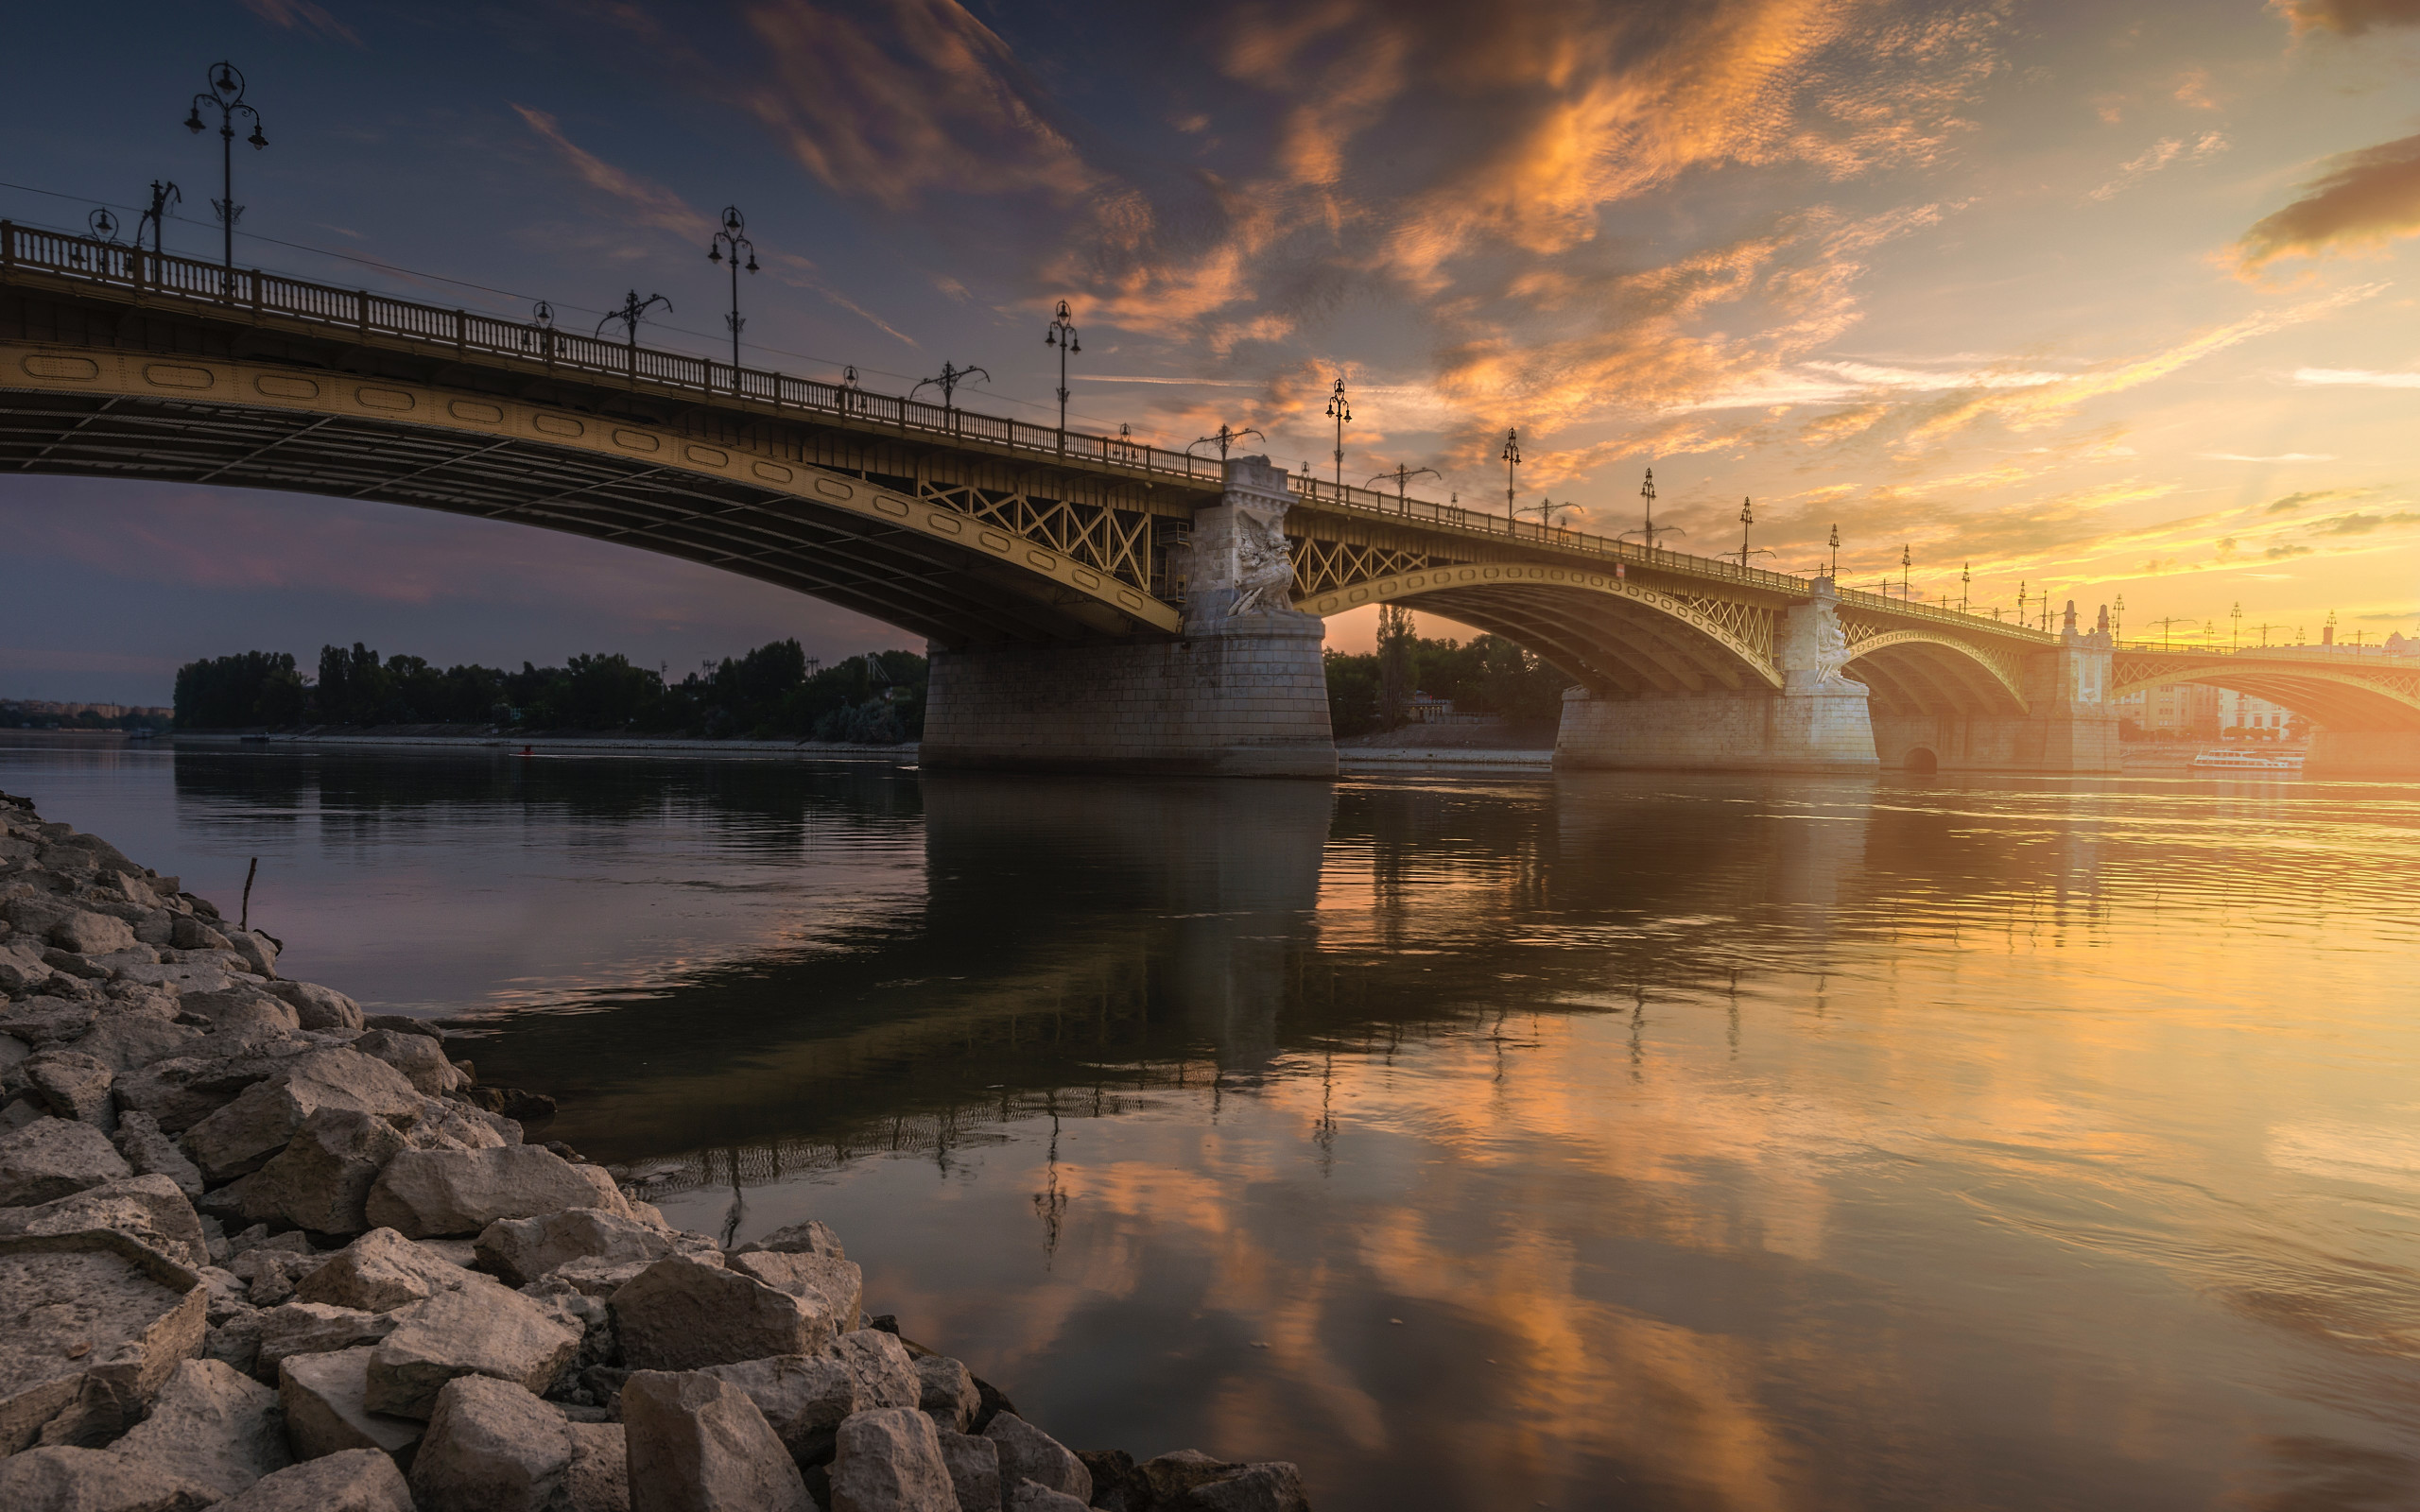 Margaret Bridge over Danube river wallpaper 2560x1600